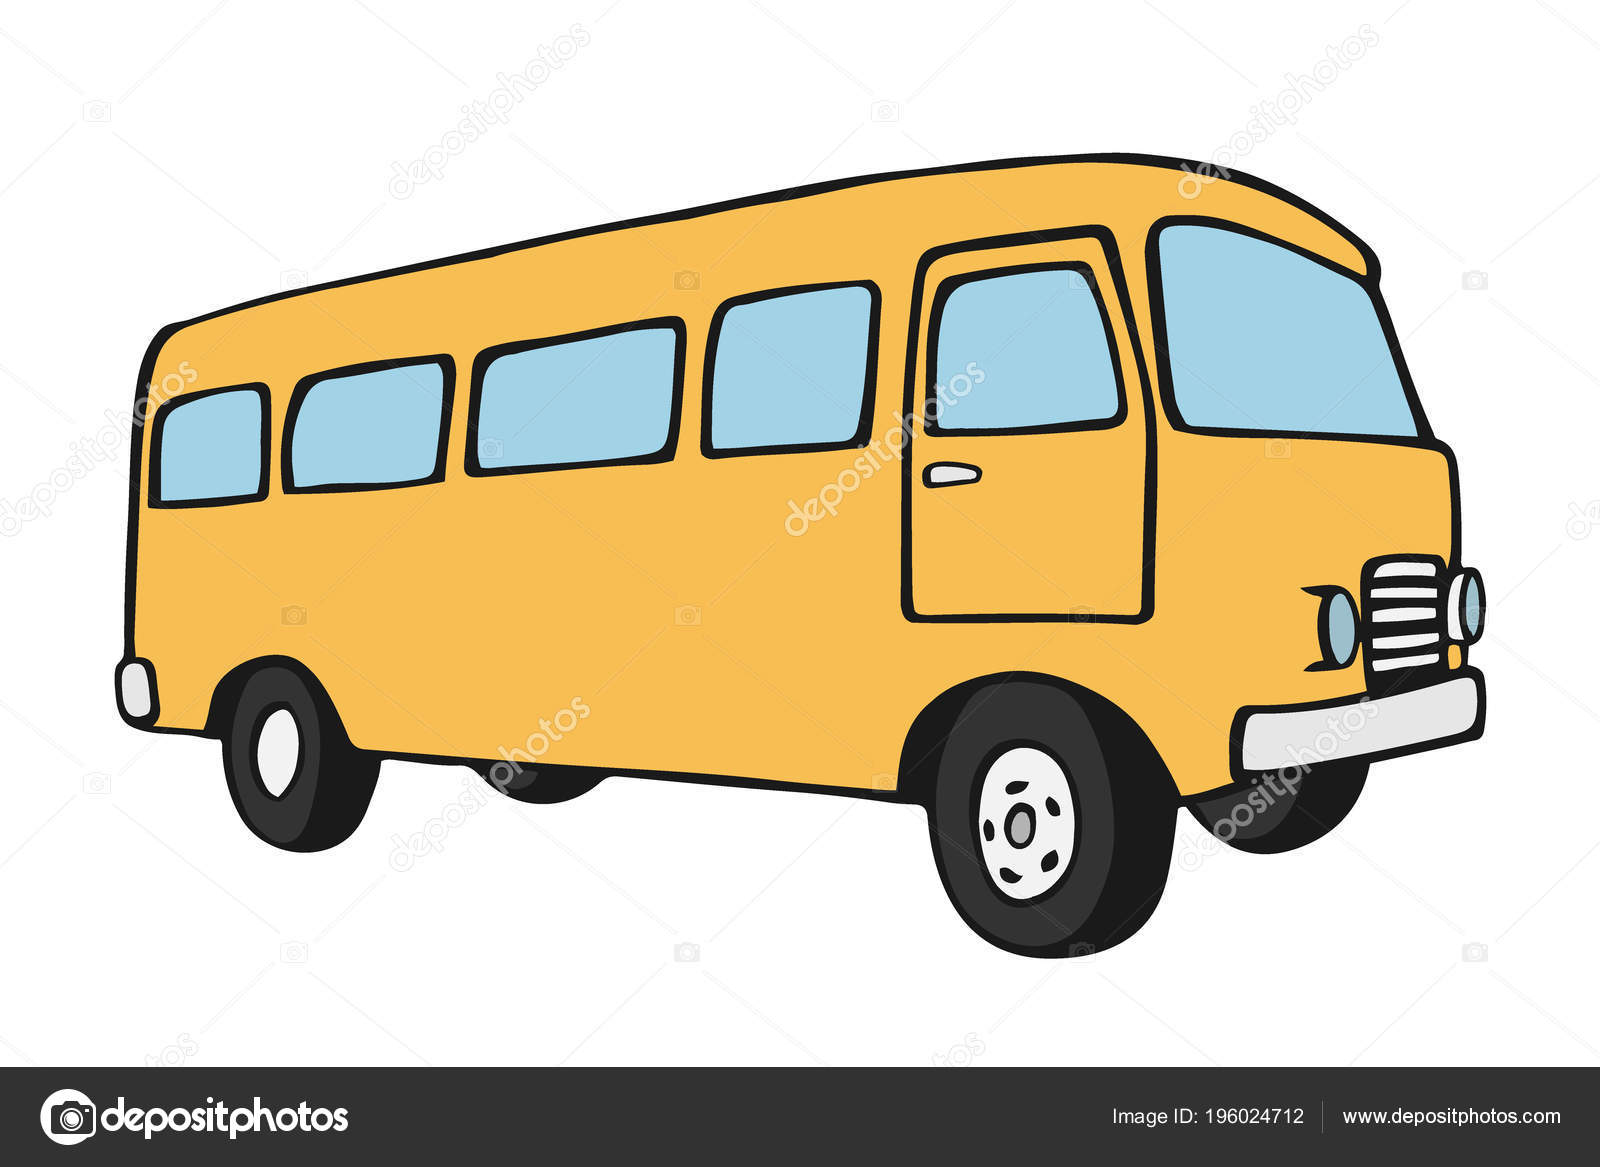 055fe876a1 Surfer van. Vintage travel car. Old classic camper minivan. Retro hippie  bus. Vector illustration in flat design isolated on white background.